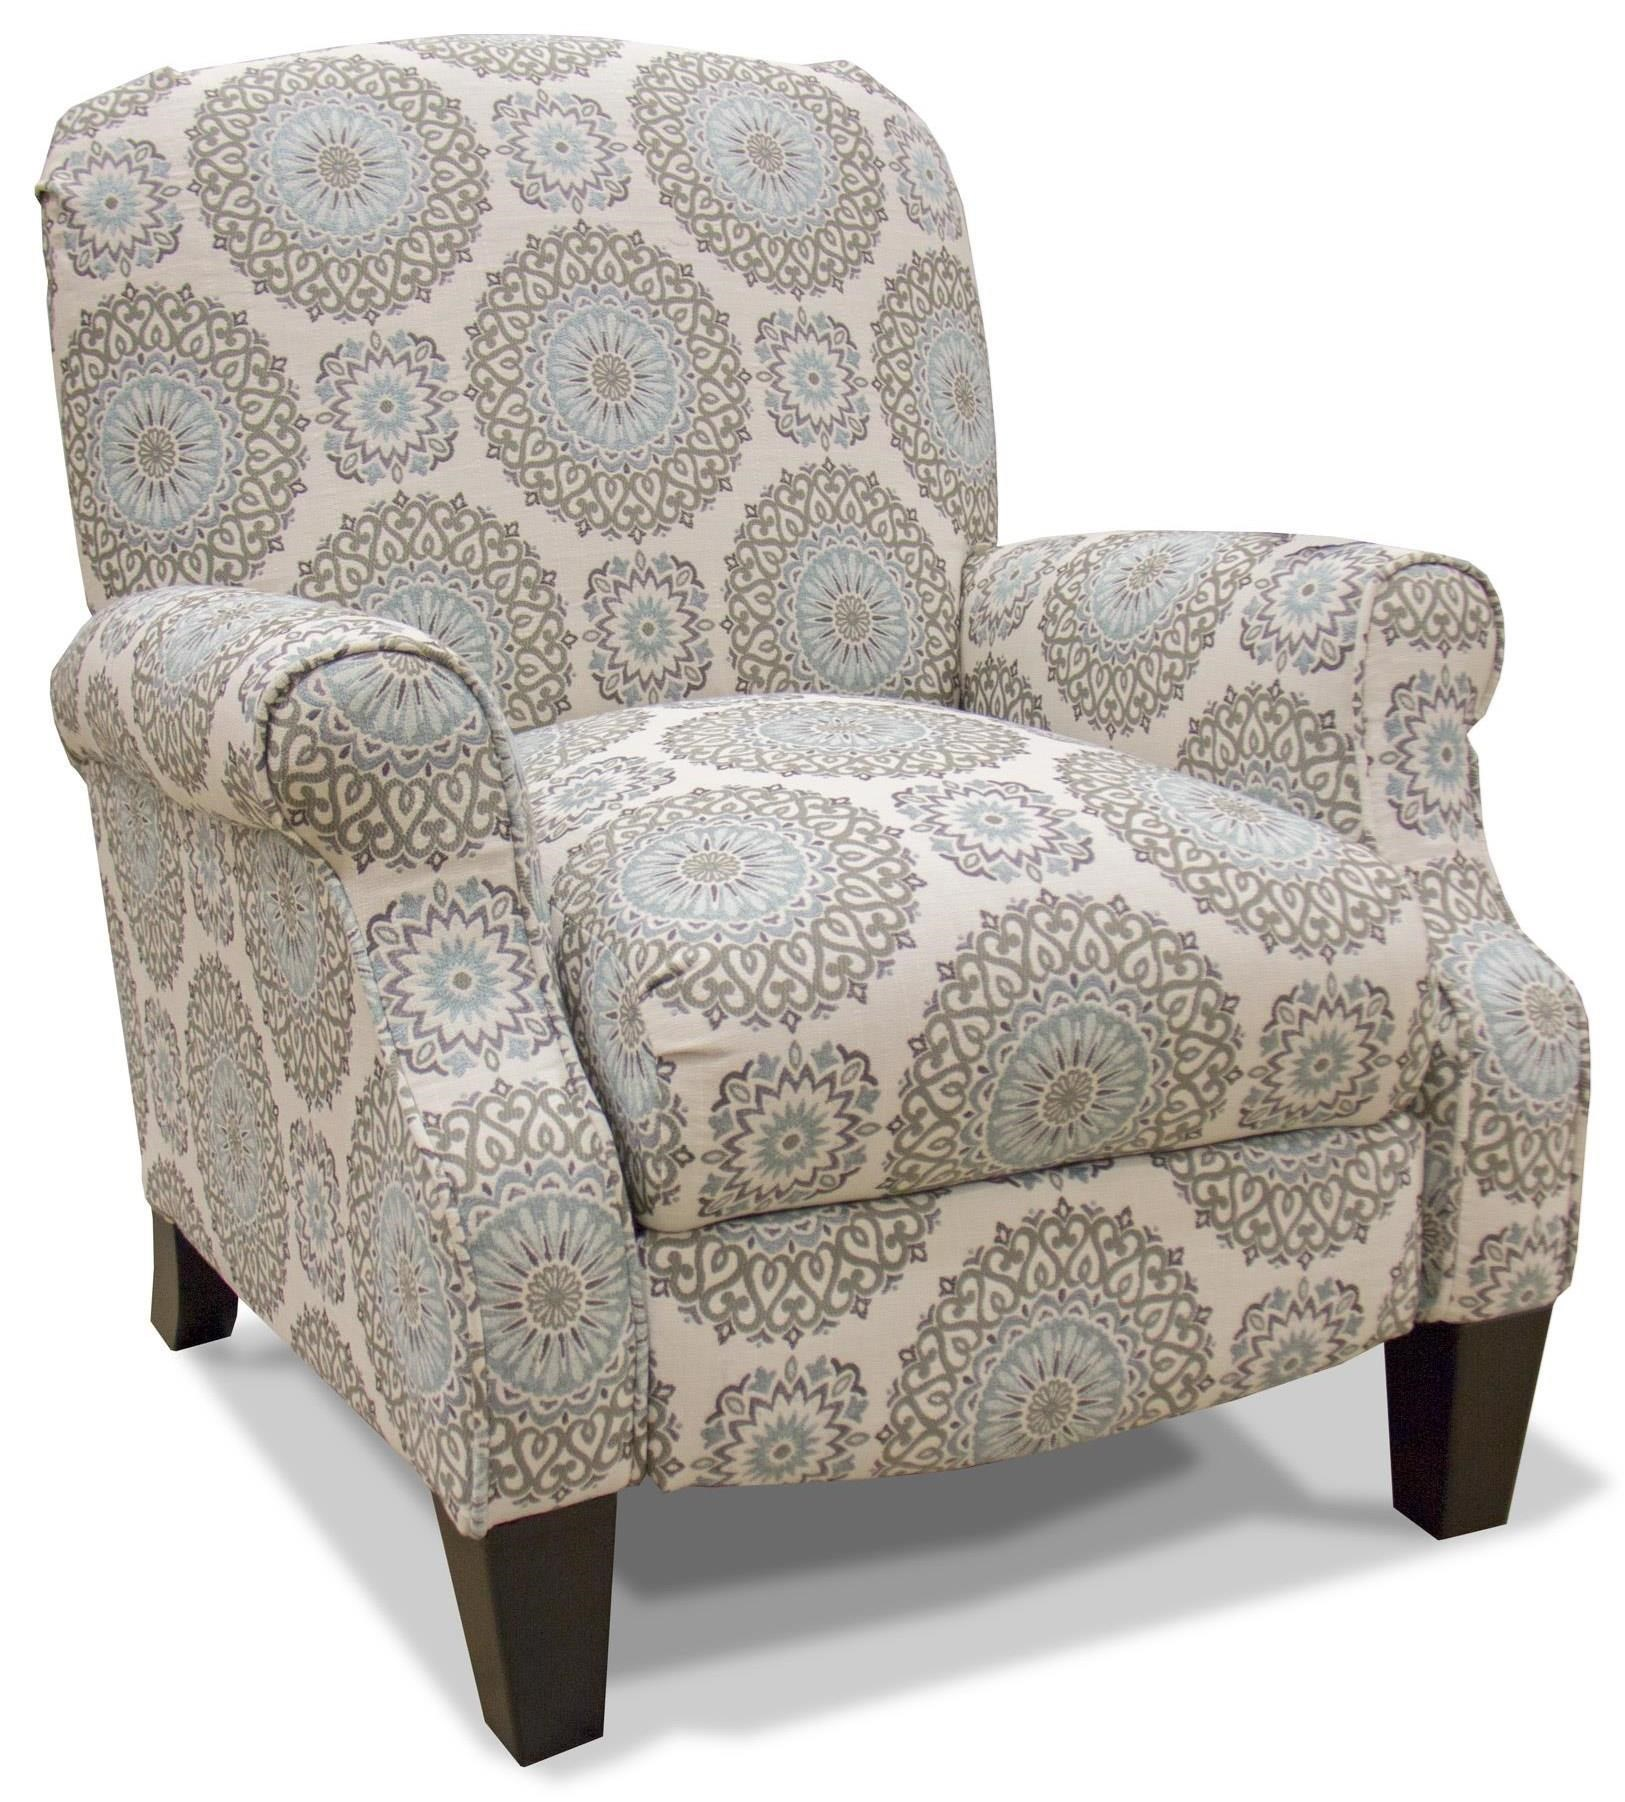 Franklin Klaus Twilight Pushback Recliner - Item Number: 507-3640-49